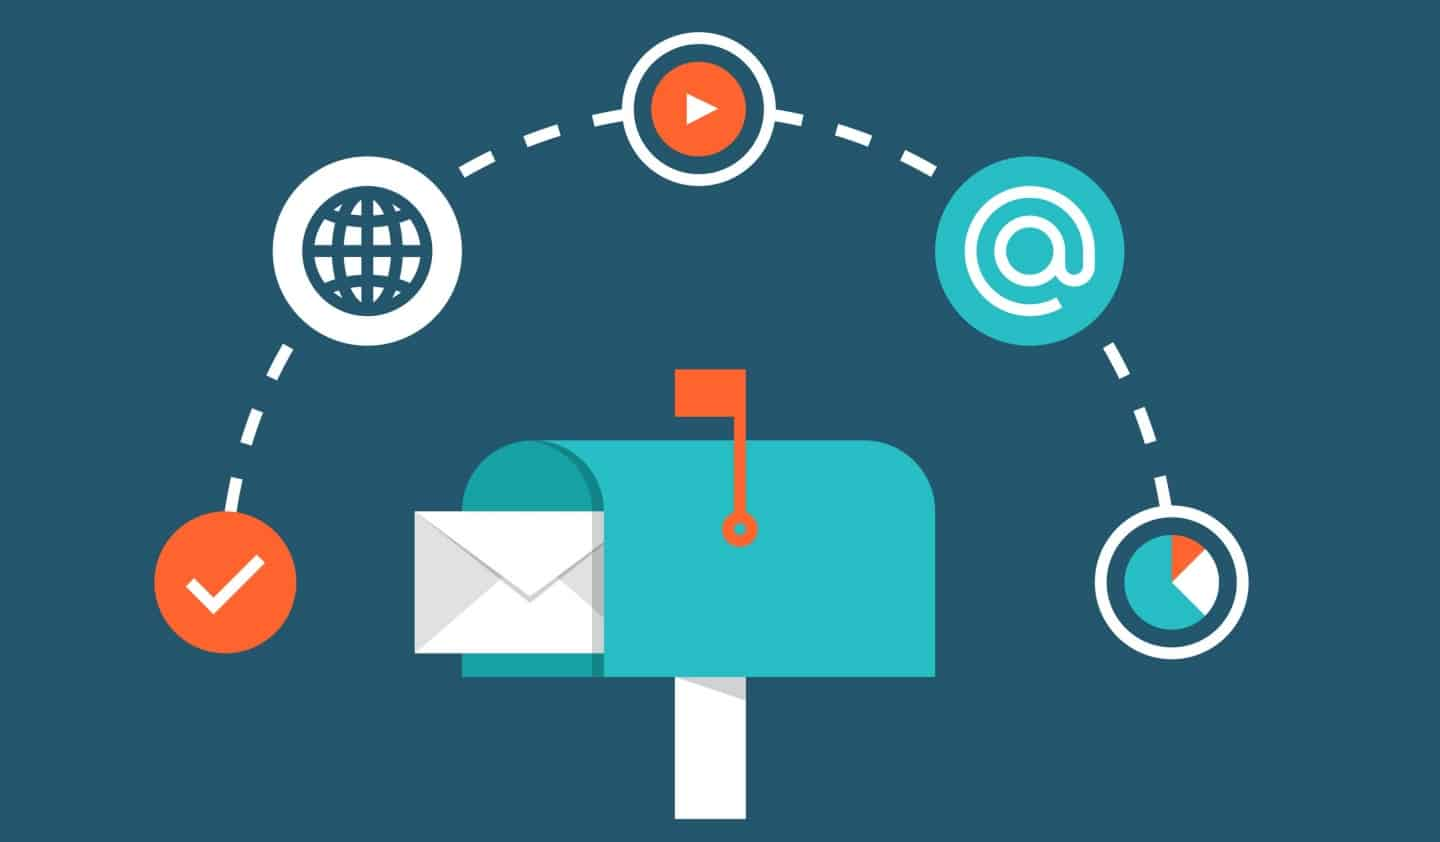 3 Ways to Make Your Newsletter Subscribers Feel Special